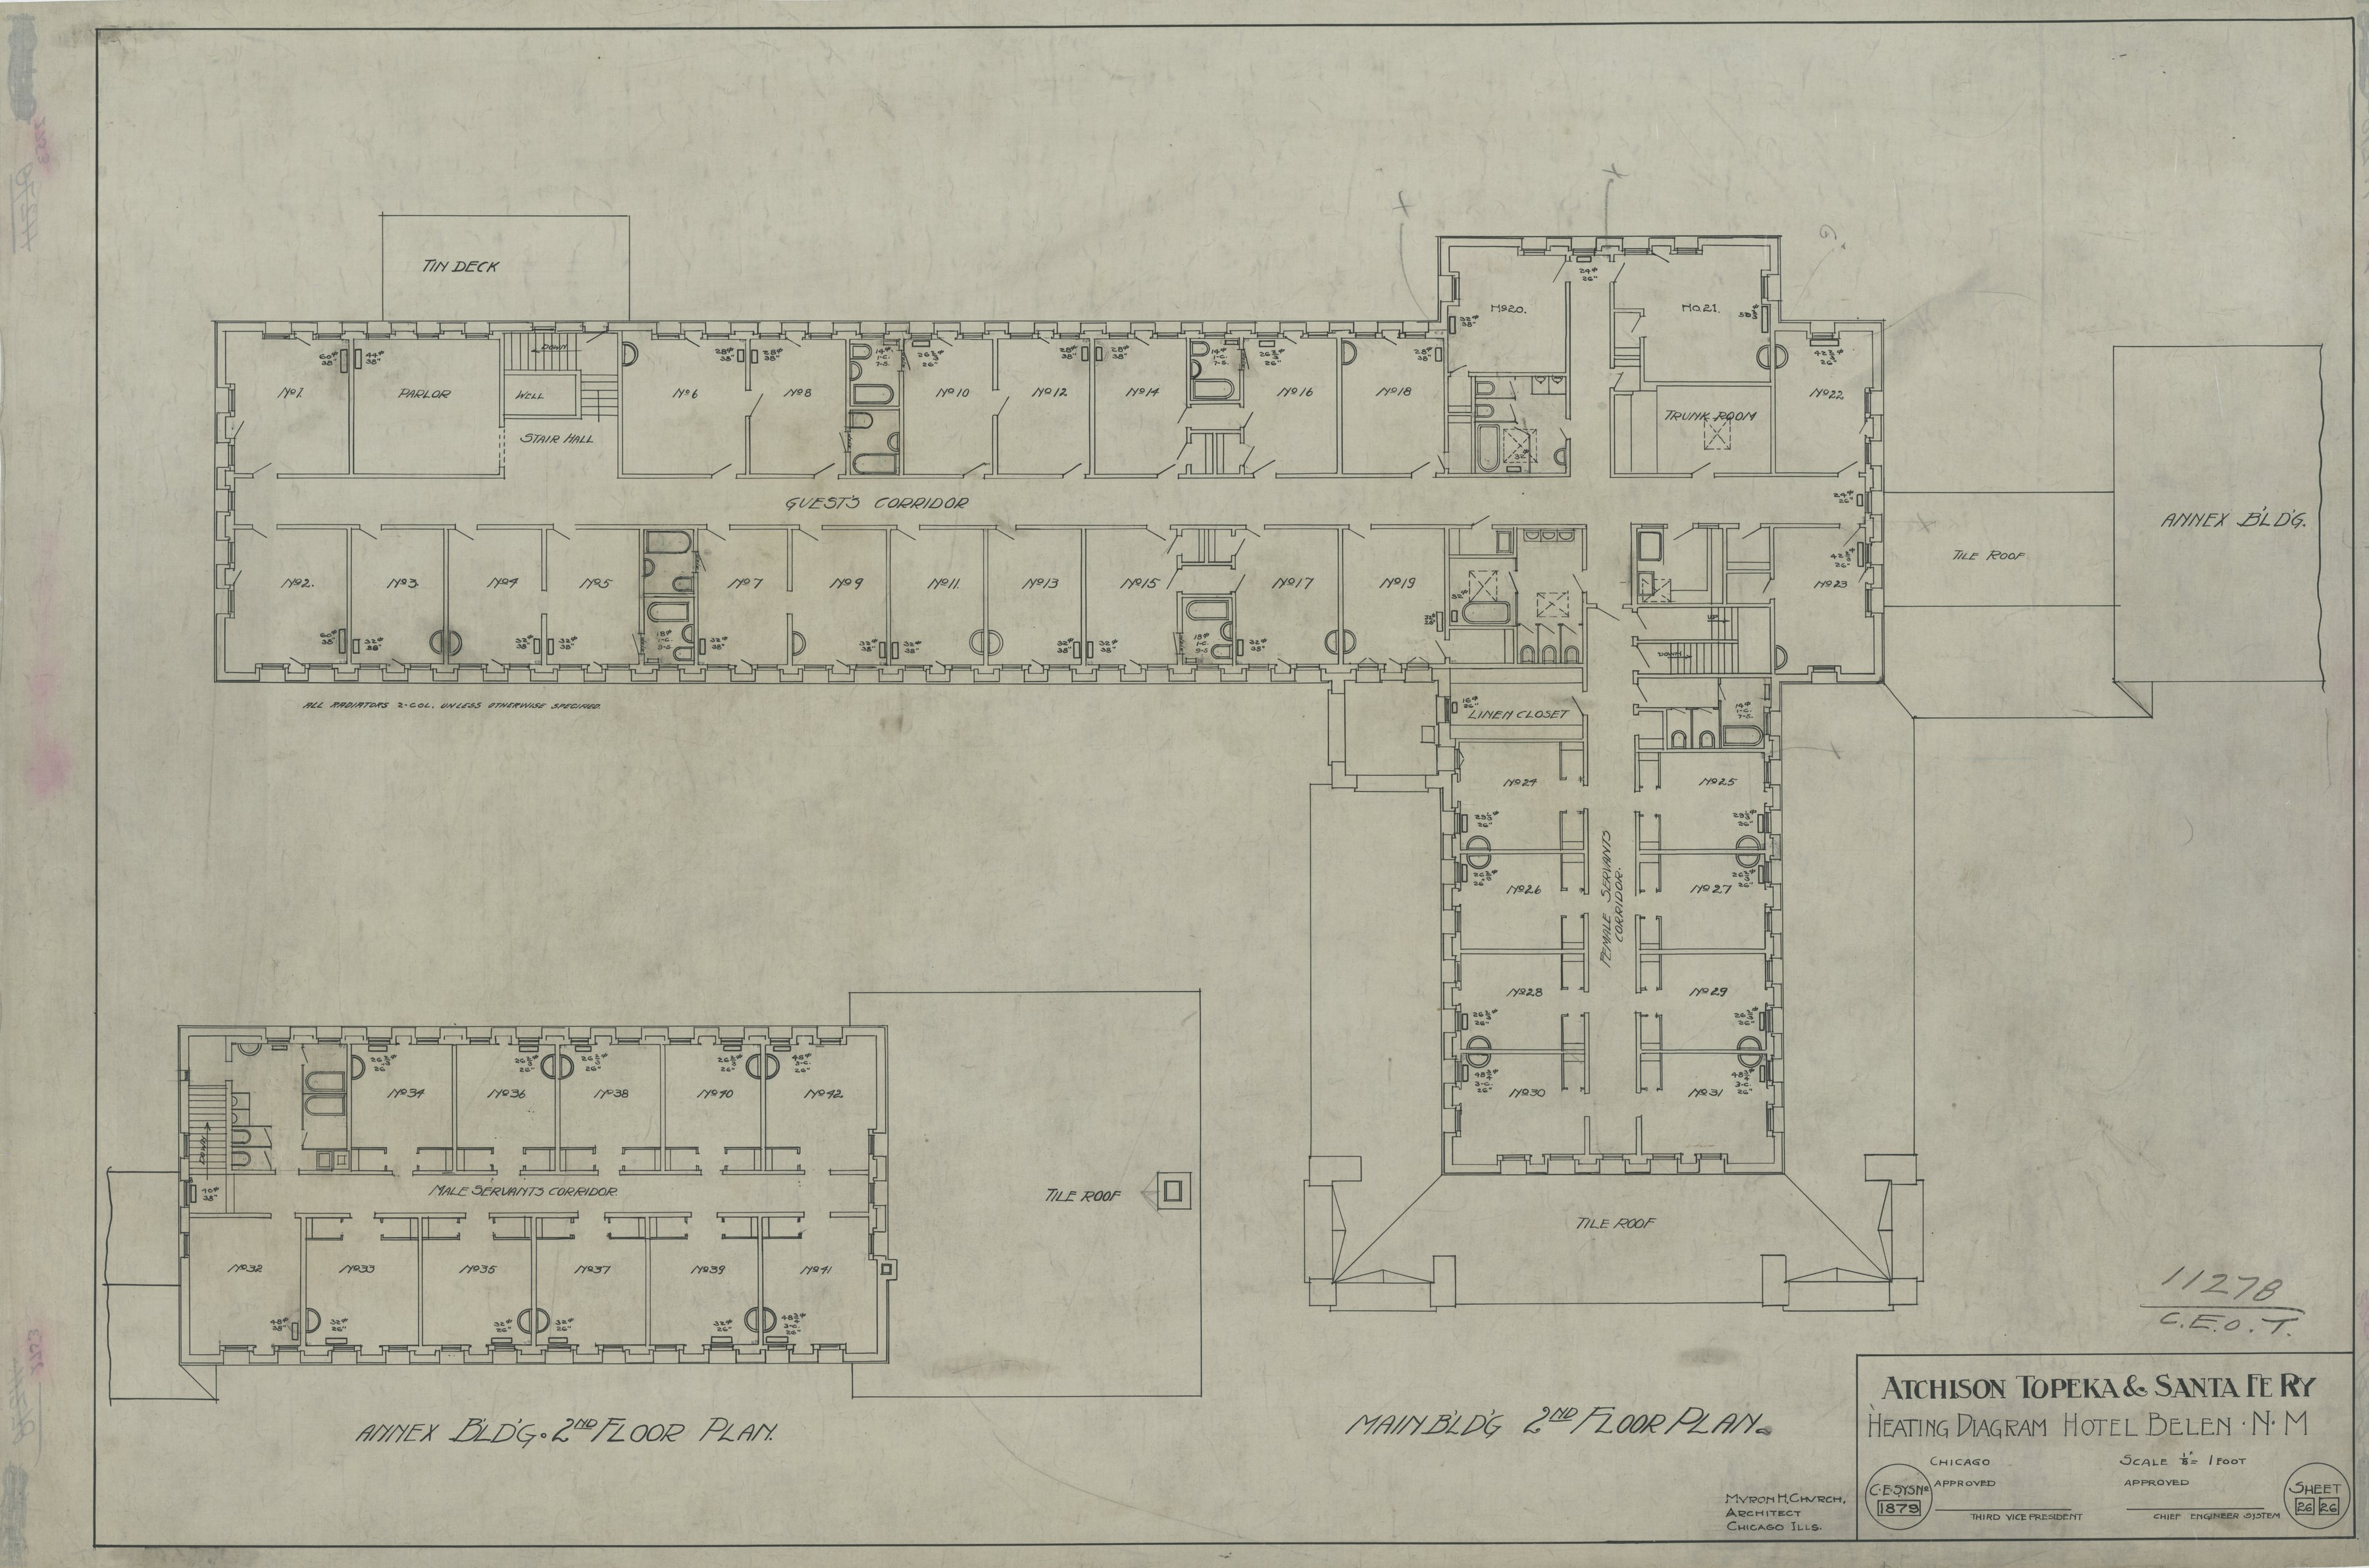 AT&SF Company hotel, Belen, New Mexico - Heating Diagram, 1879